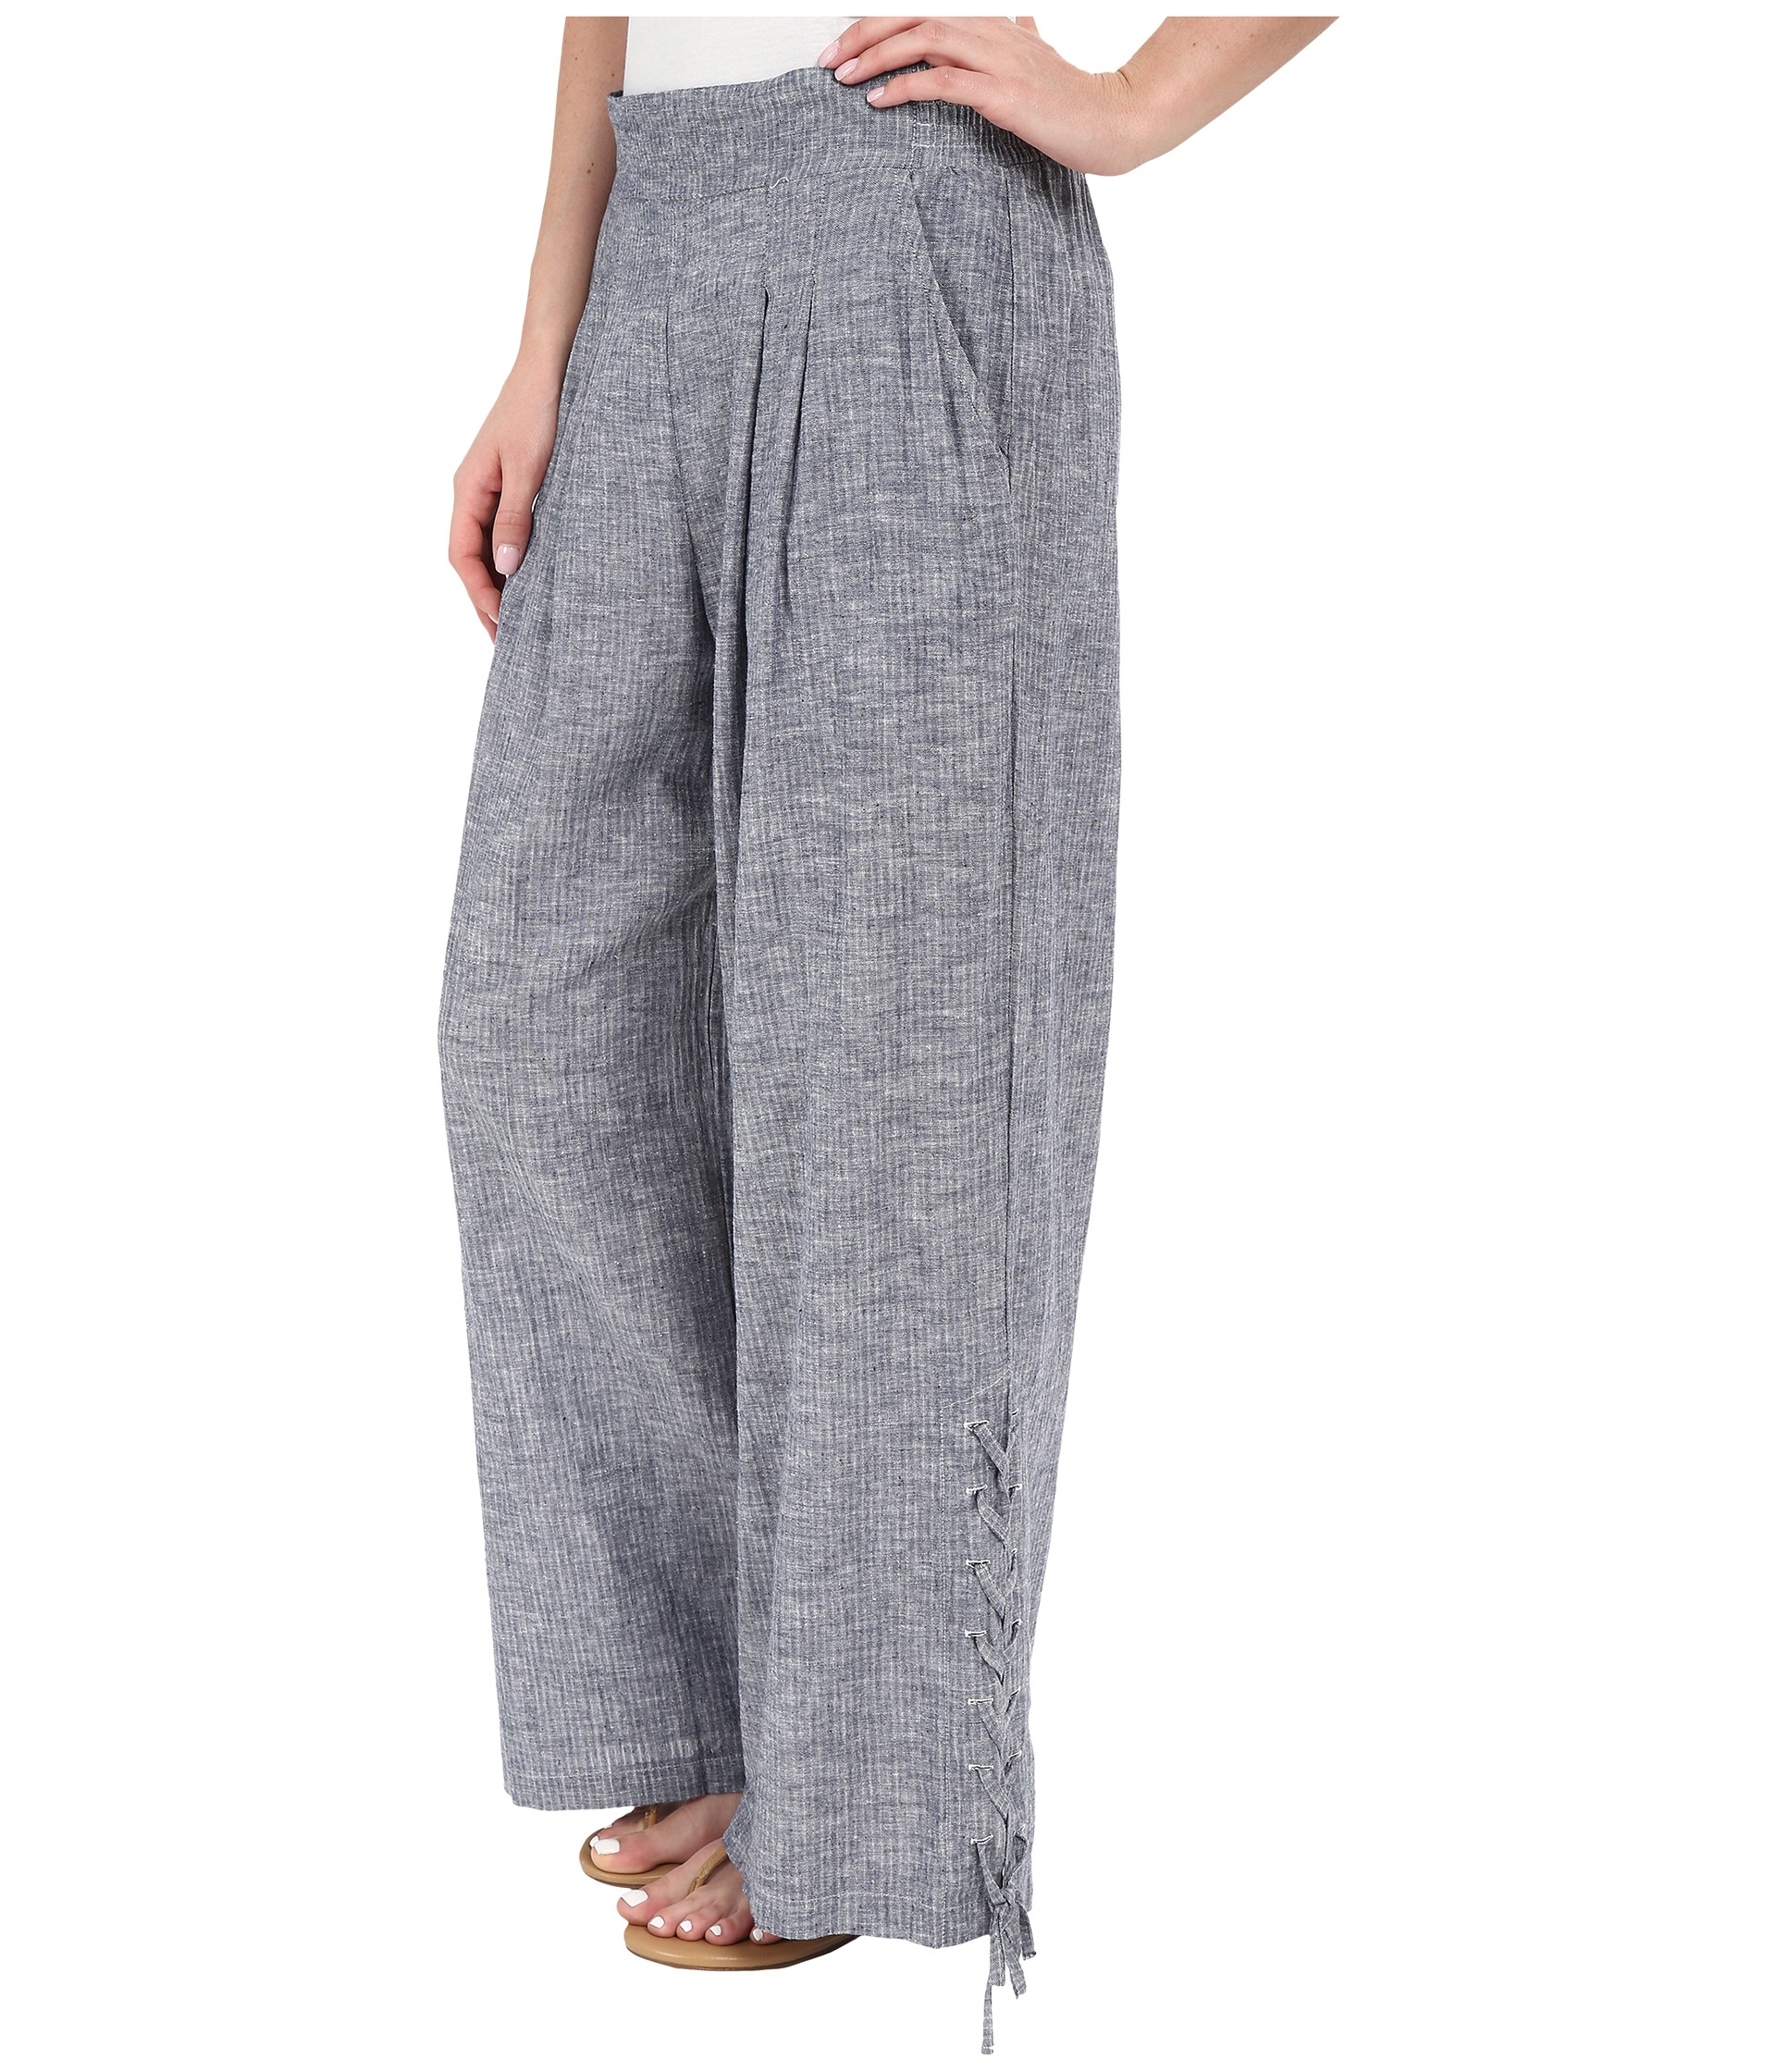 Miraclebody Lil Cropped Wide Leg Pull-on Pants in Blue | Lyst